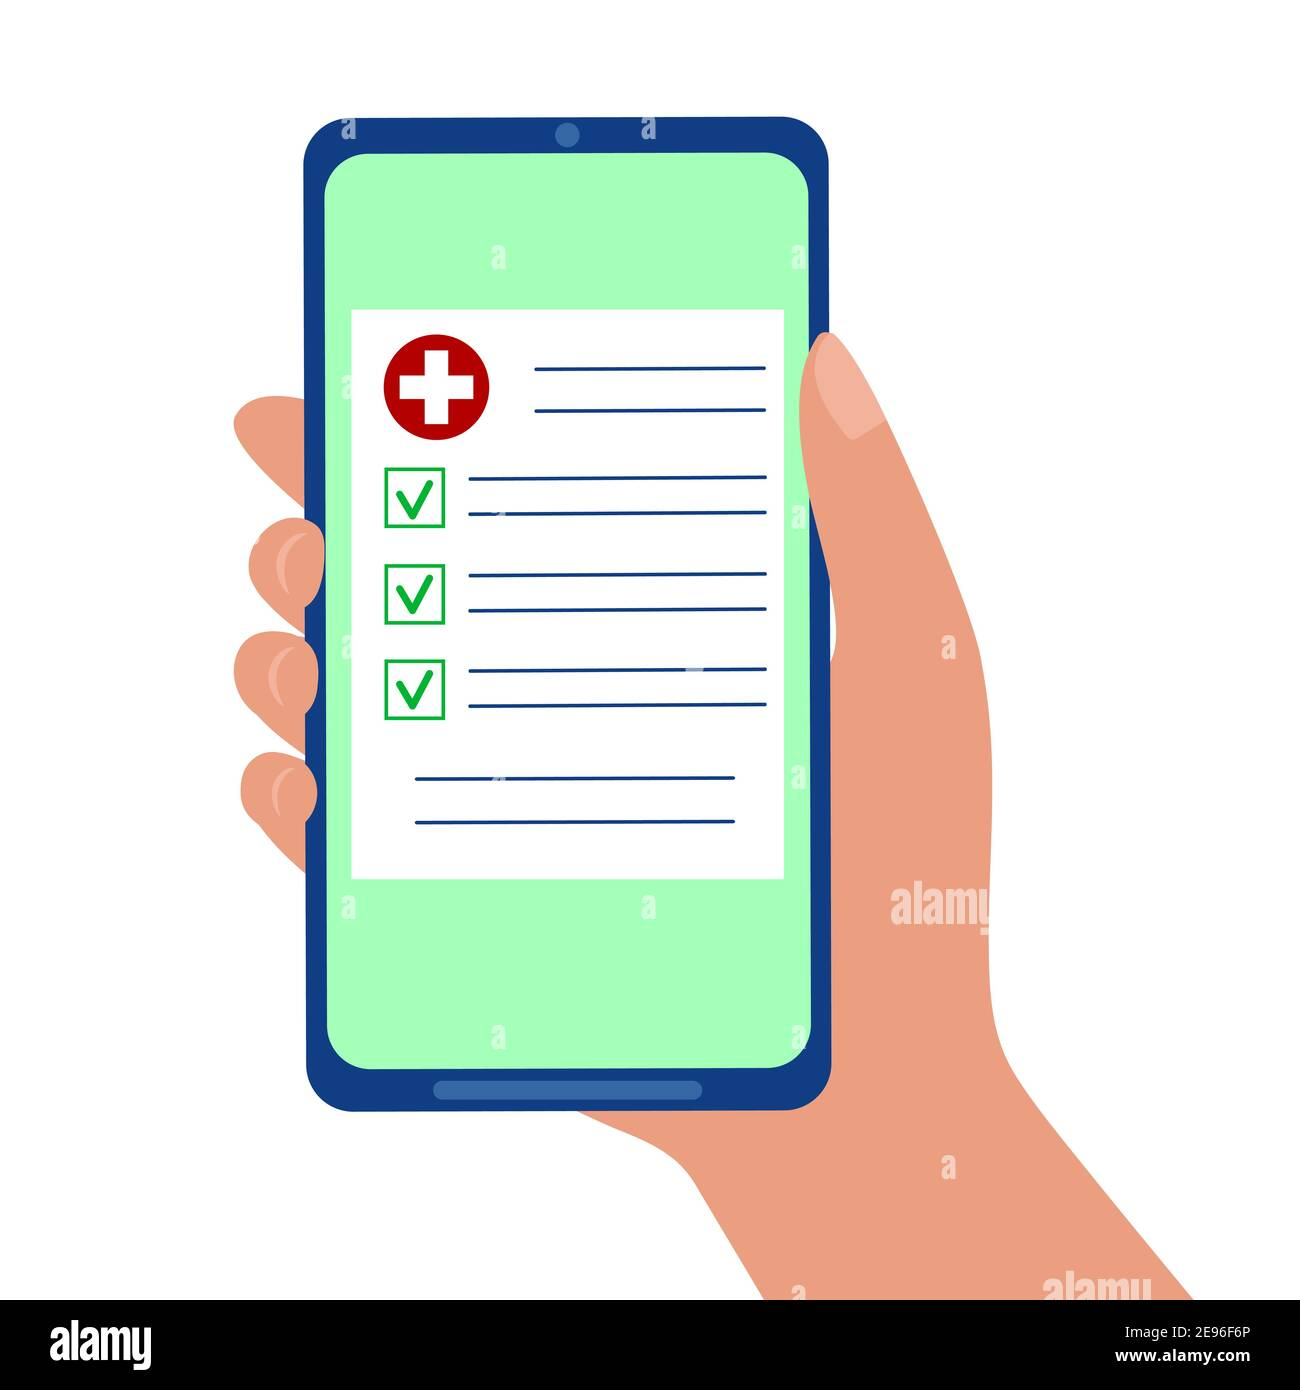 Drugs prescription, medical insurance, test results online. Hand holding smartphone with medicine document isolated on white background. Telemedicine concept. Vector flat illustration. Stock Vector